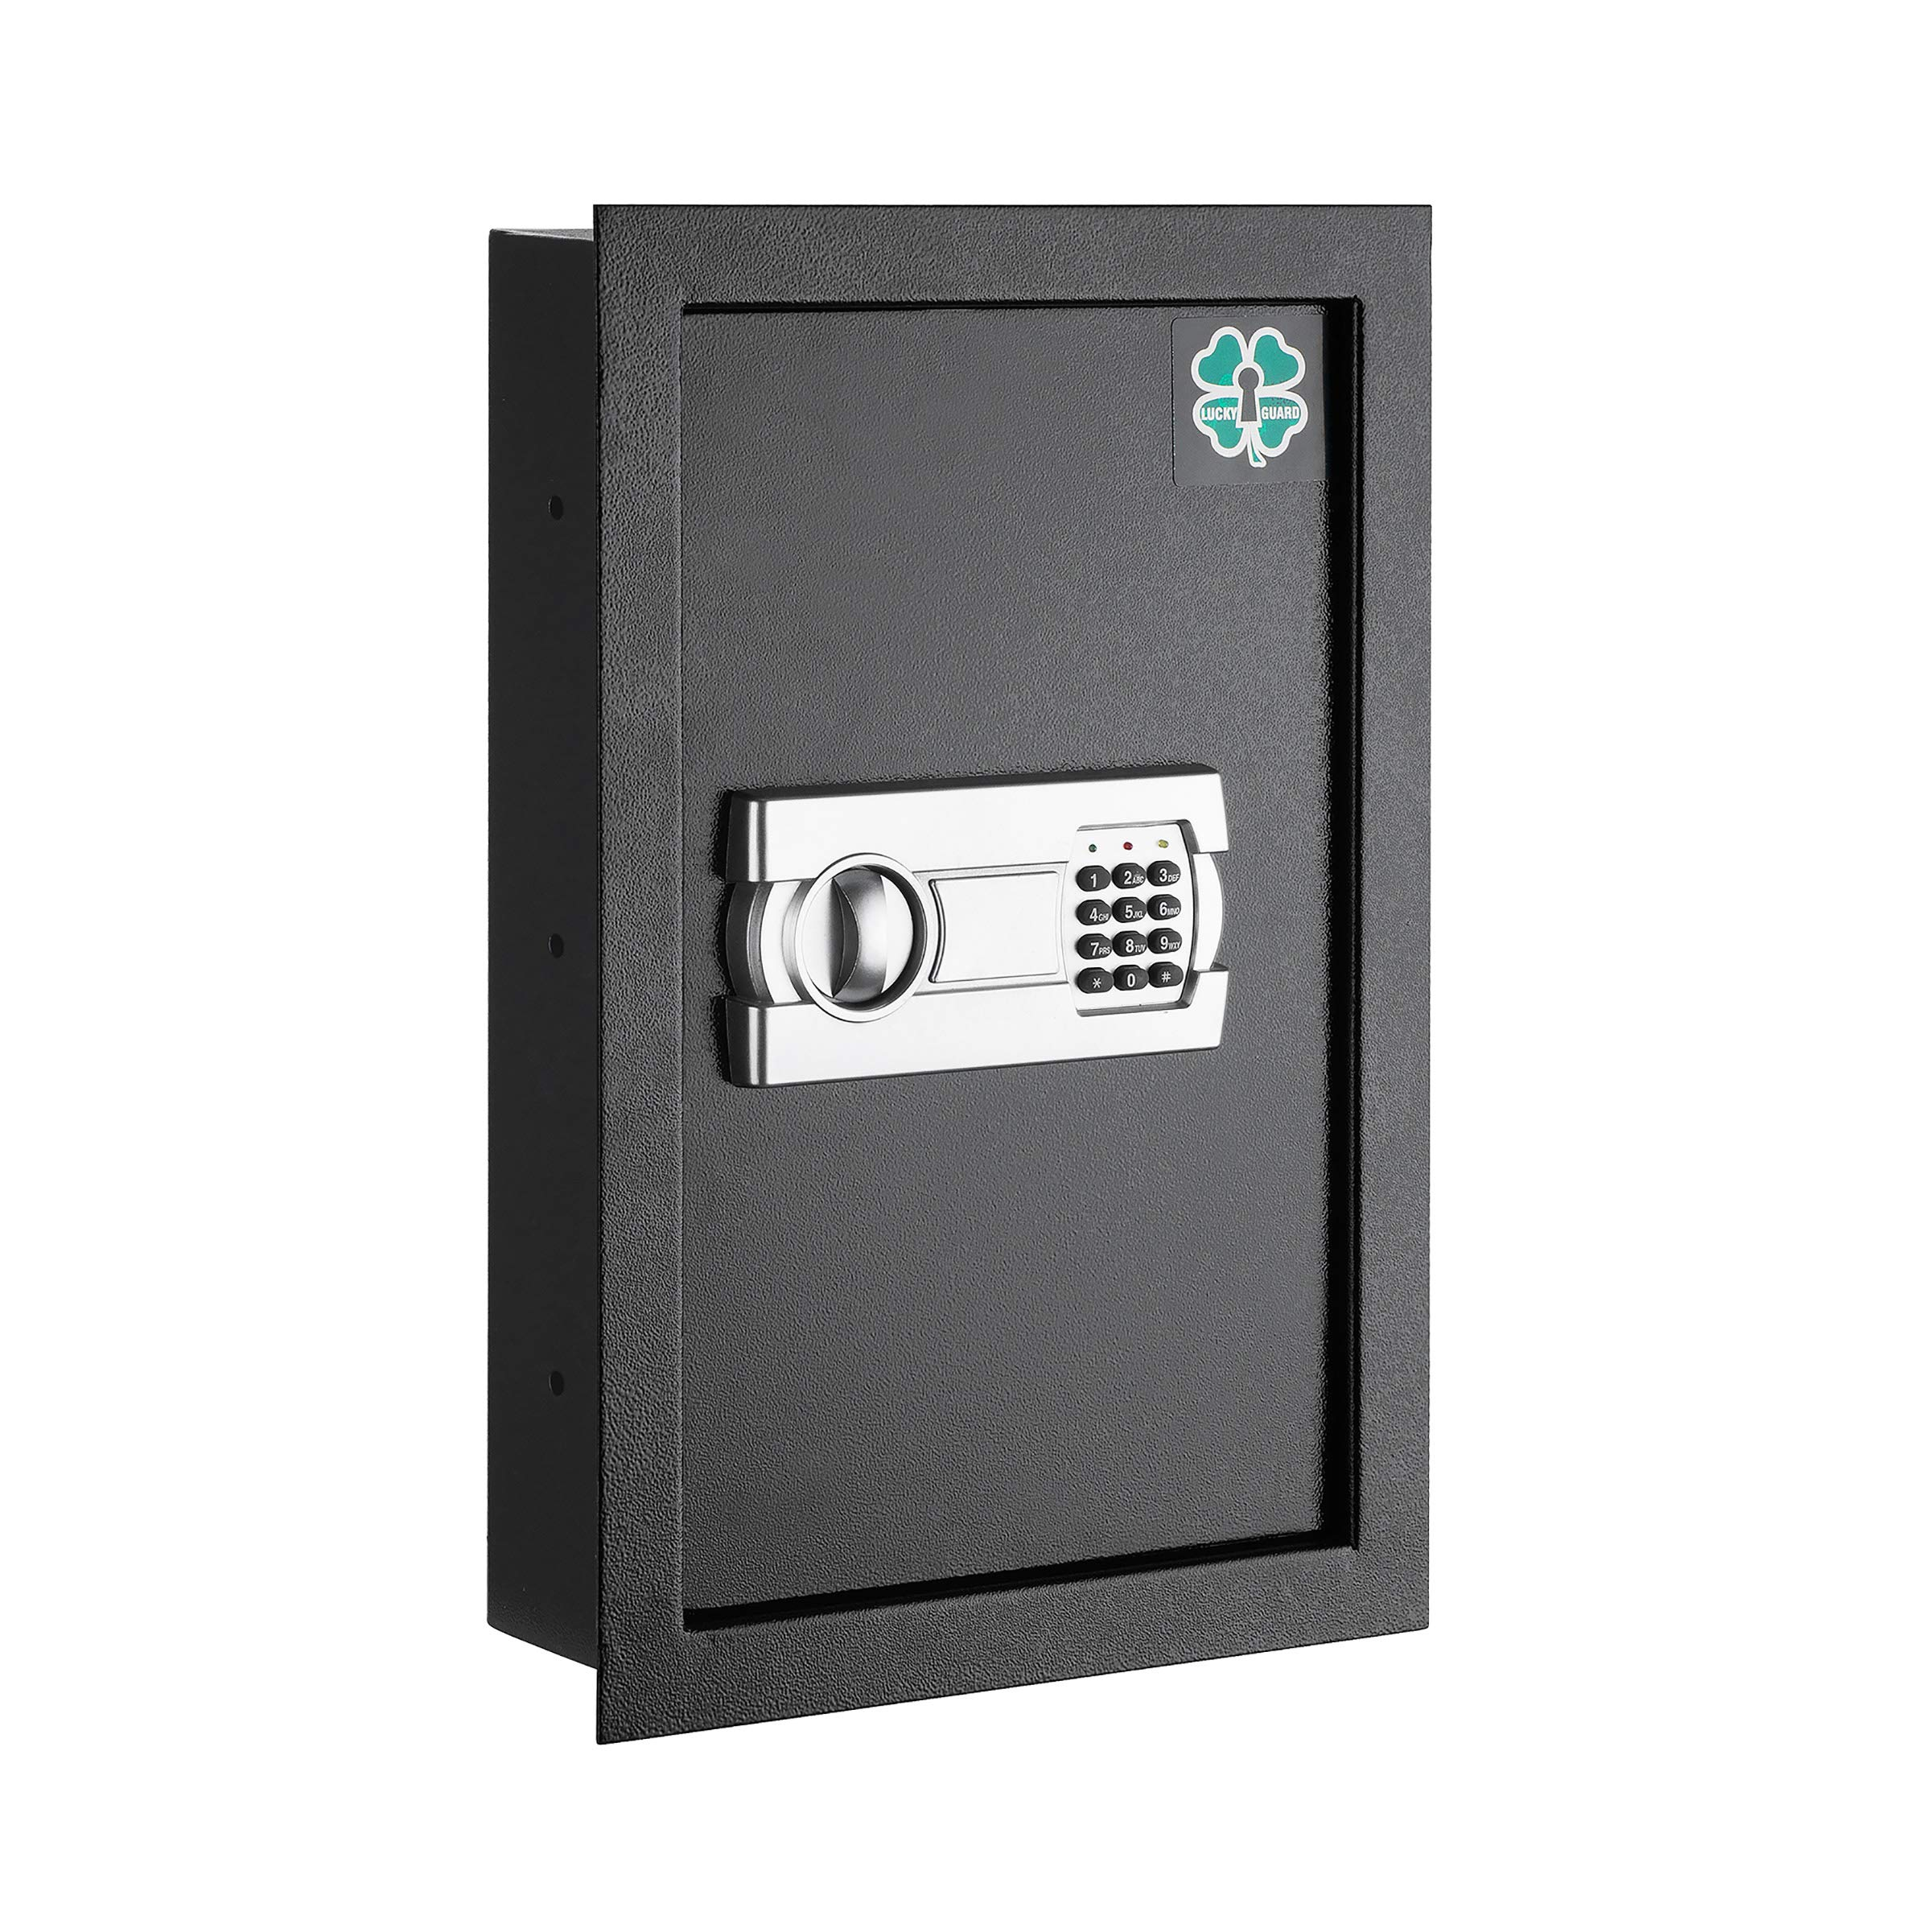 Lucky Guard 83-DT5357 Electronic Economy Wall Hidden Large Safes Jewelry Secure Dark, Black by Lucky Guard